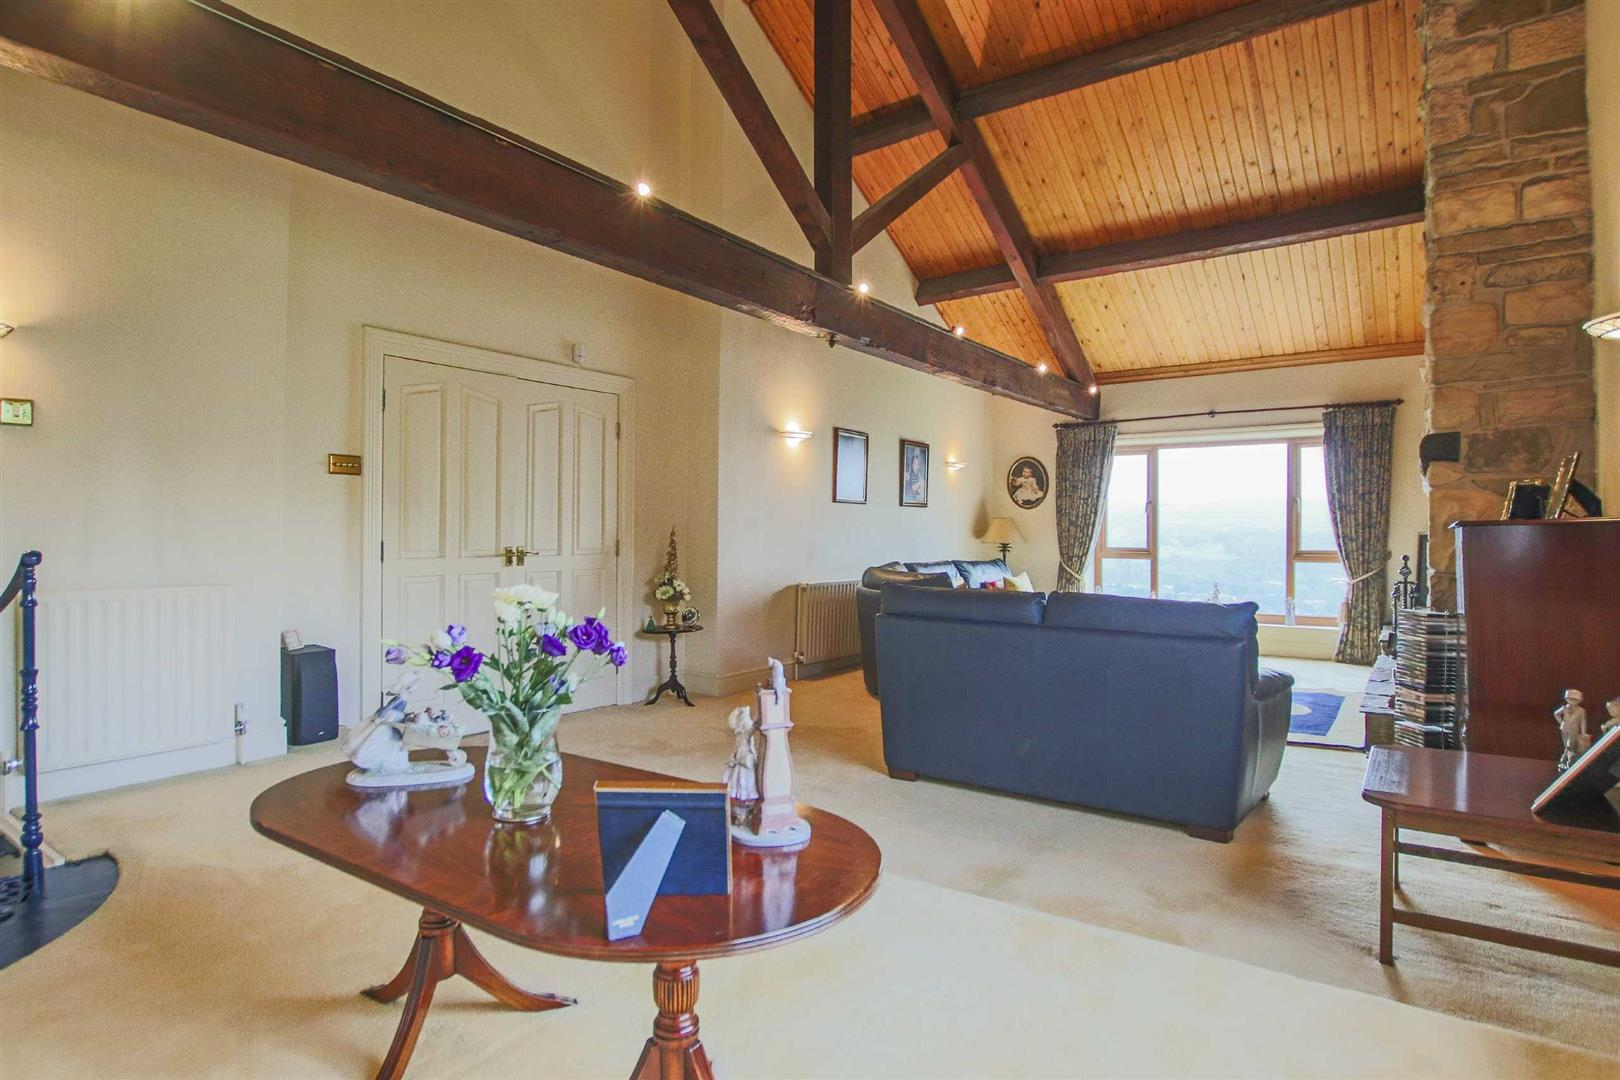 4 Bedroom Barn Conversion For Sale - p033135_41.jpg